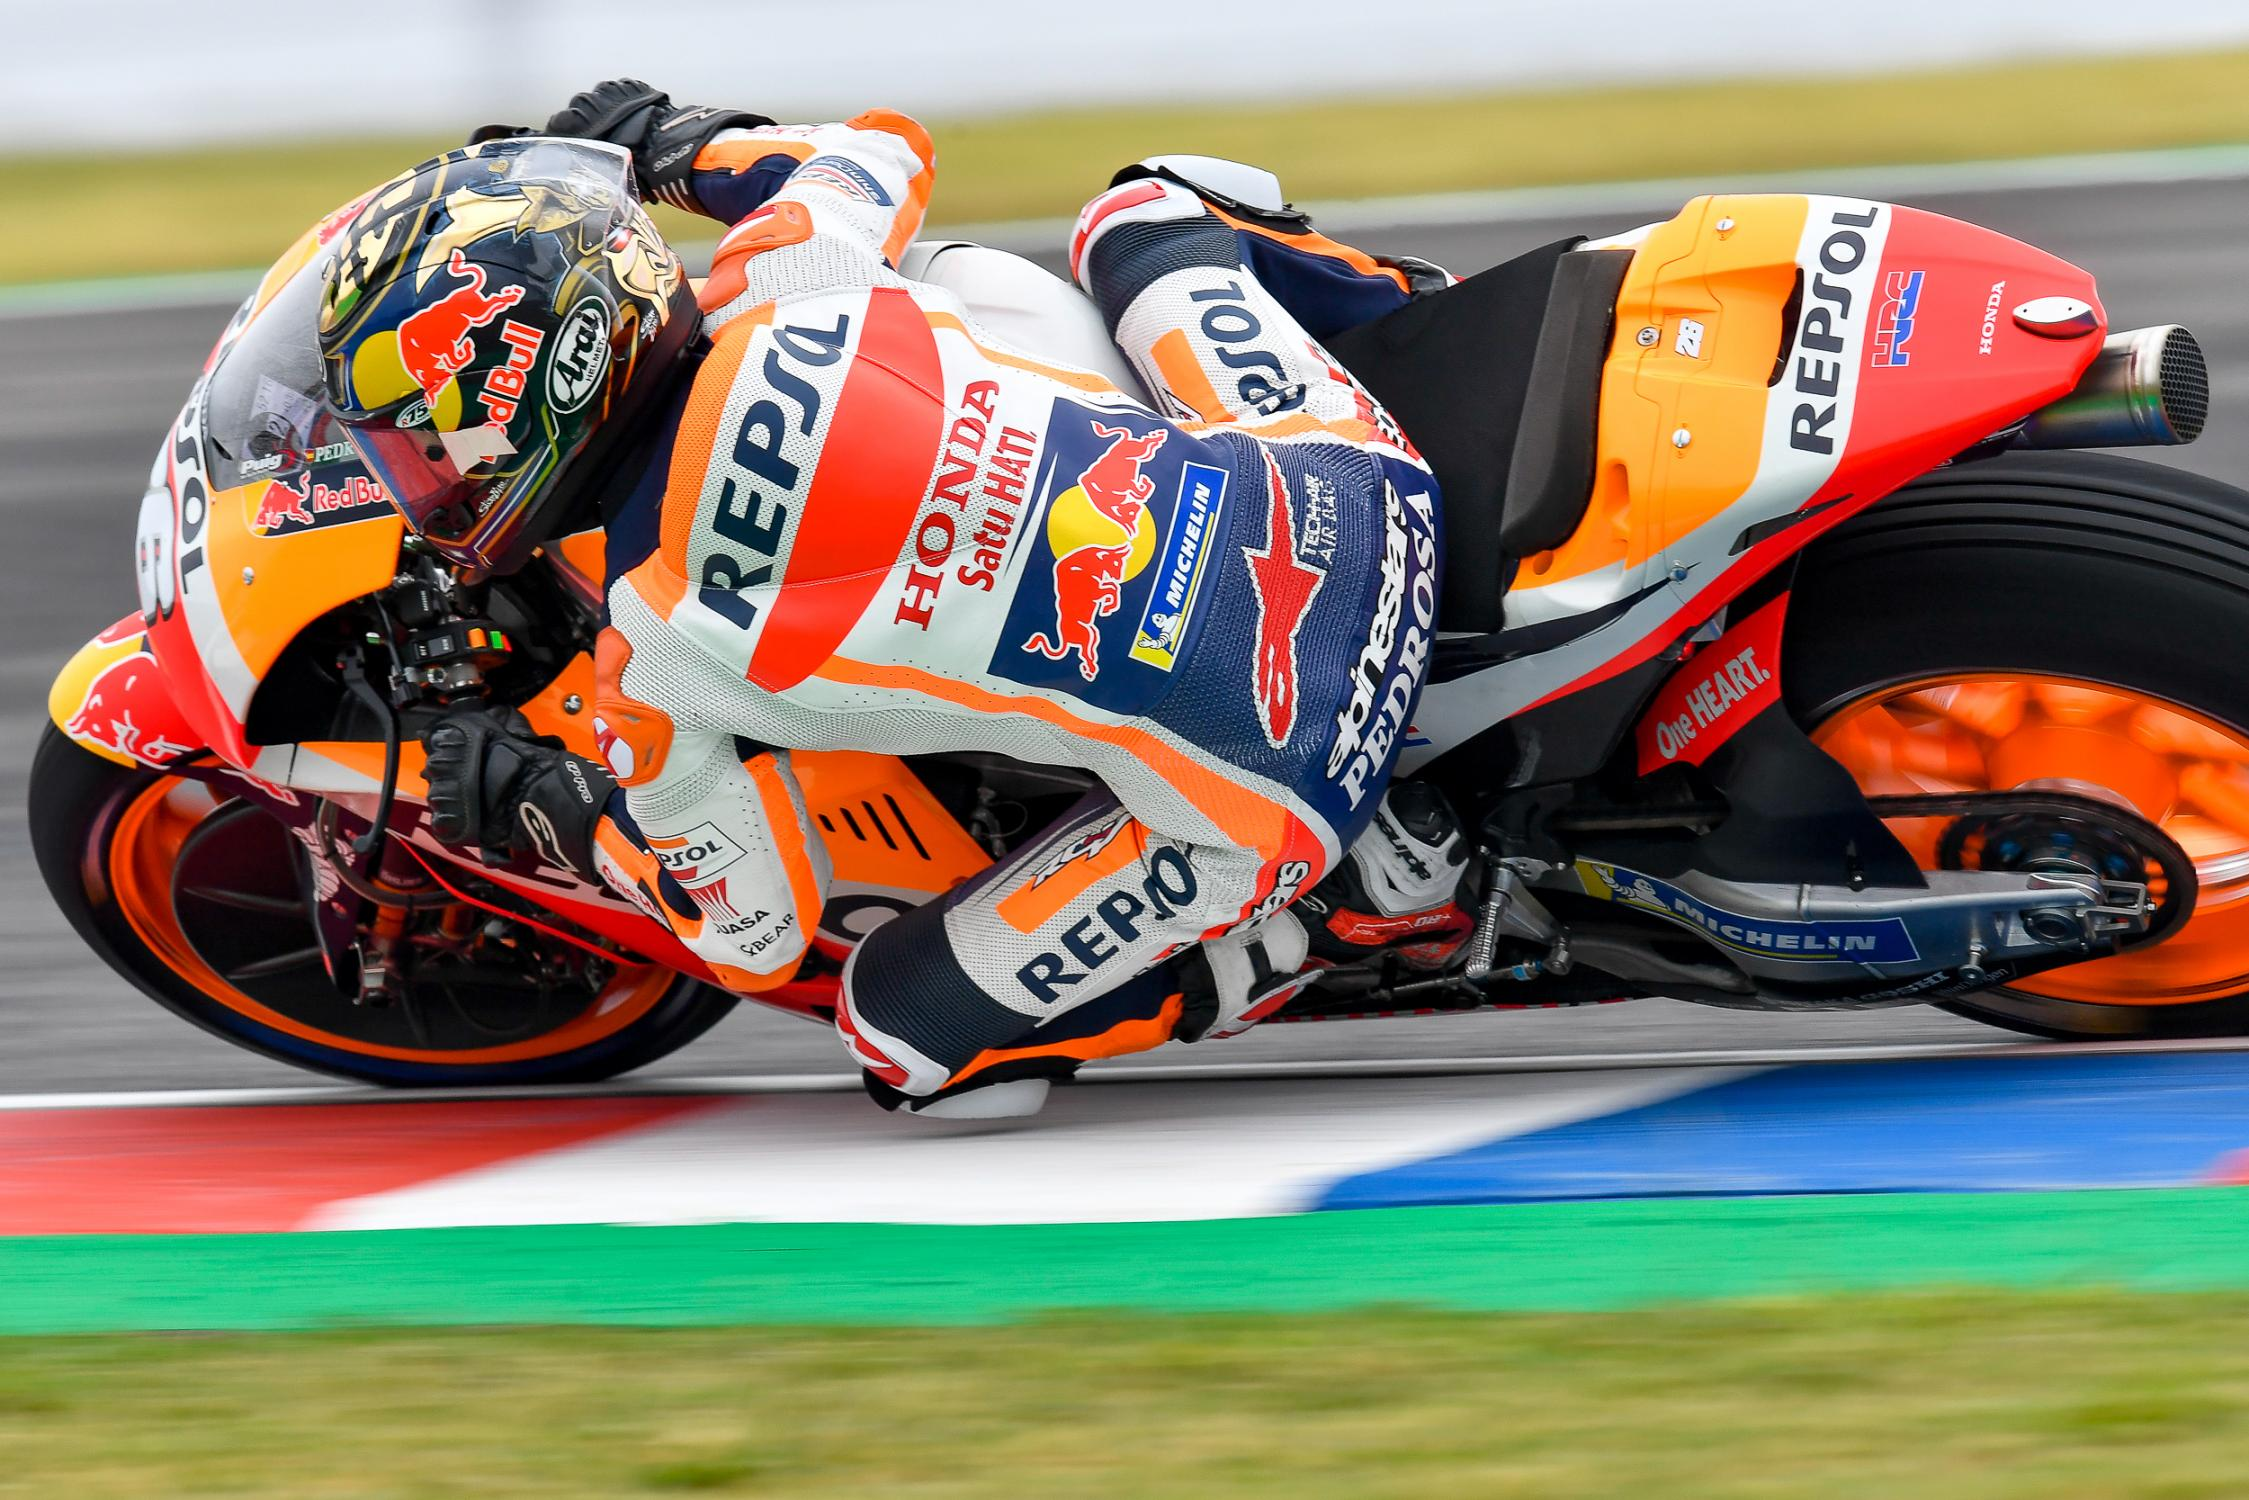 26-dani-pedrosa-esp_ds53979.gallery_full_top_fullscreen.jpg